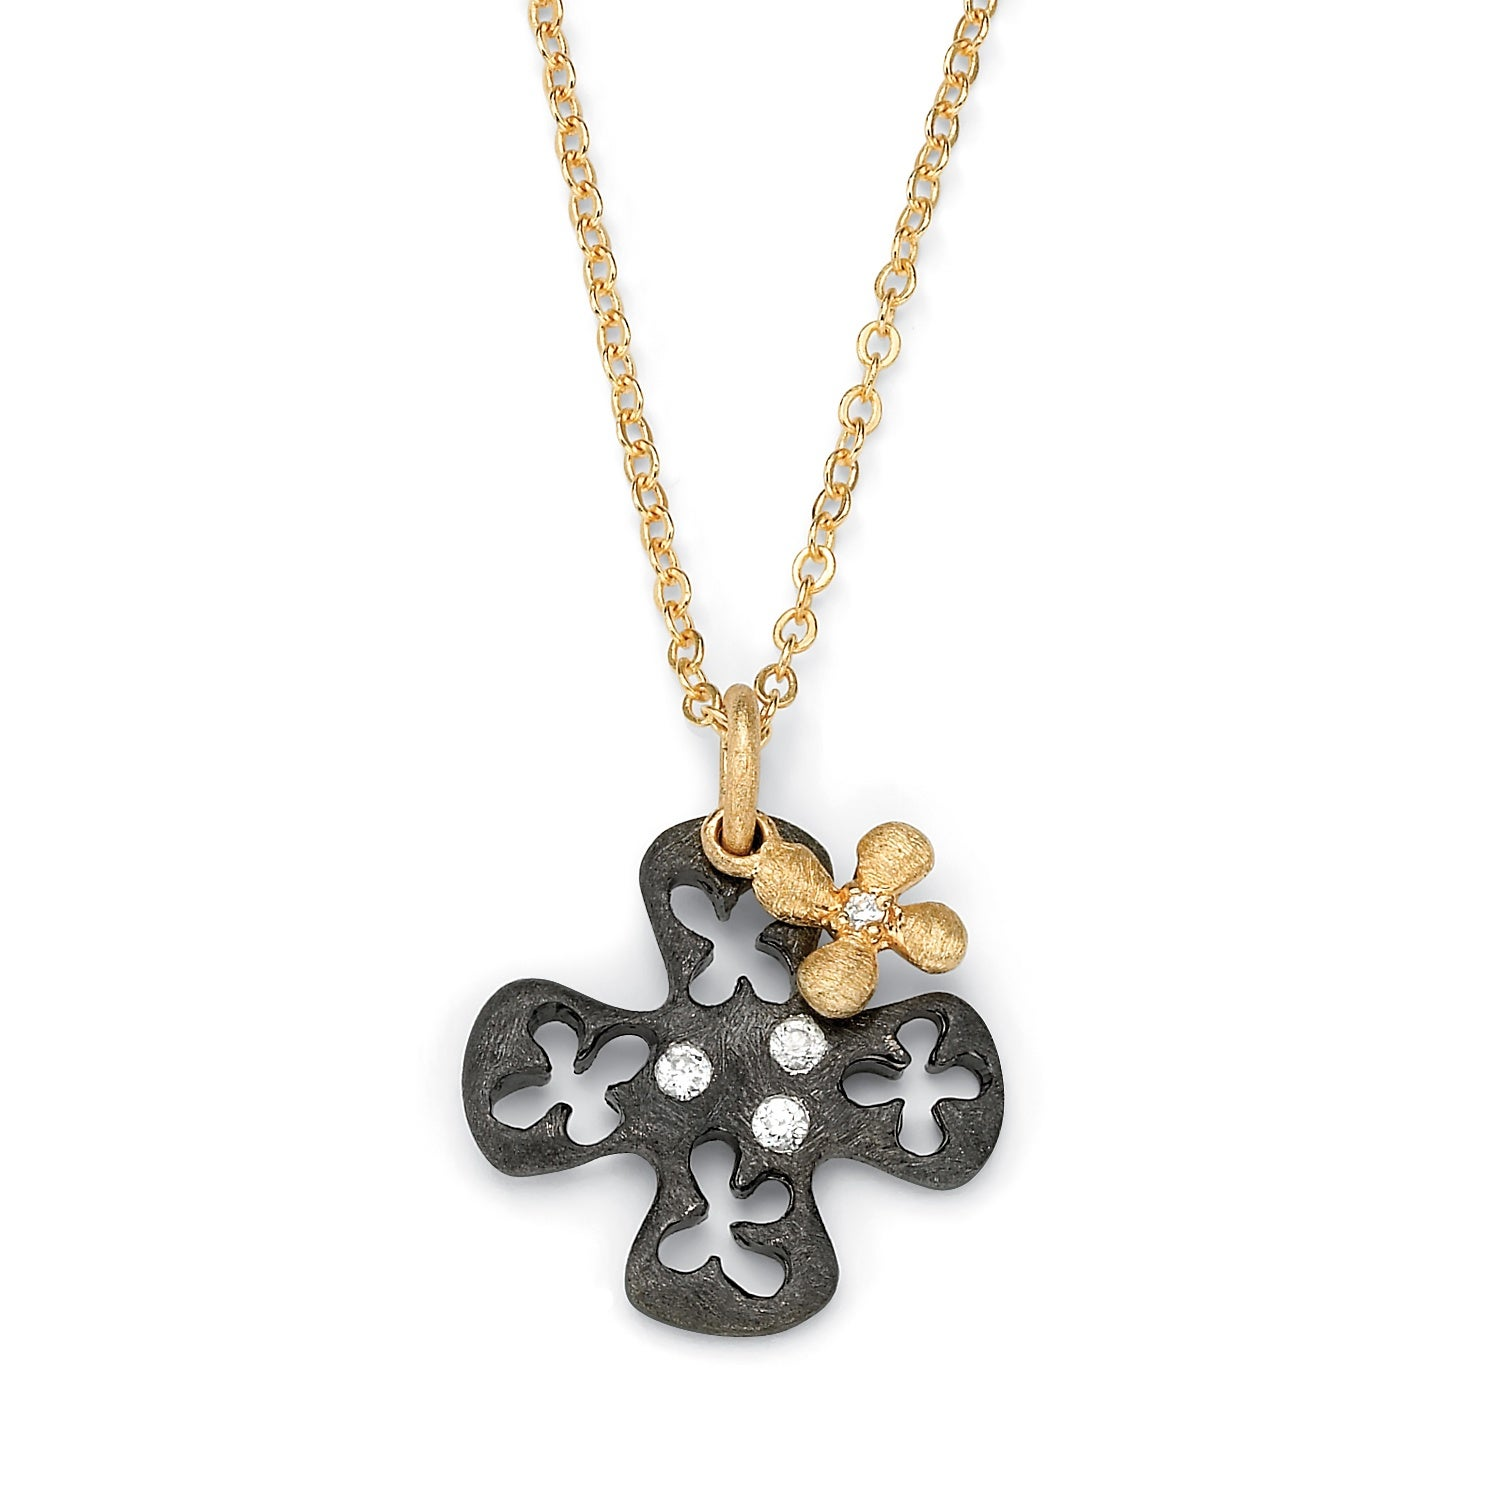 Ultimate CZ Black Ruthenium-plated Cubic Zirconia Necklace